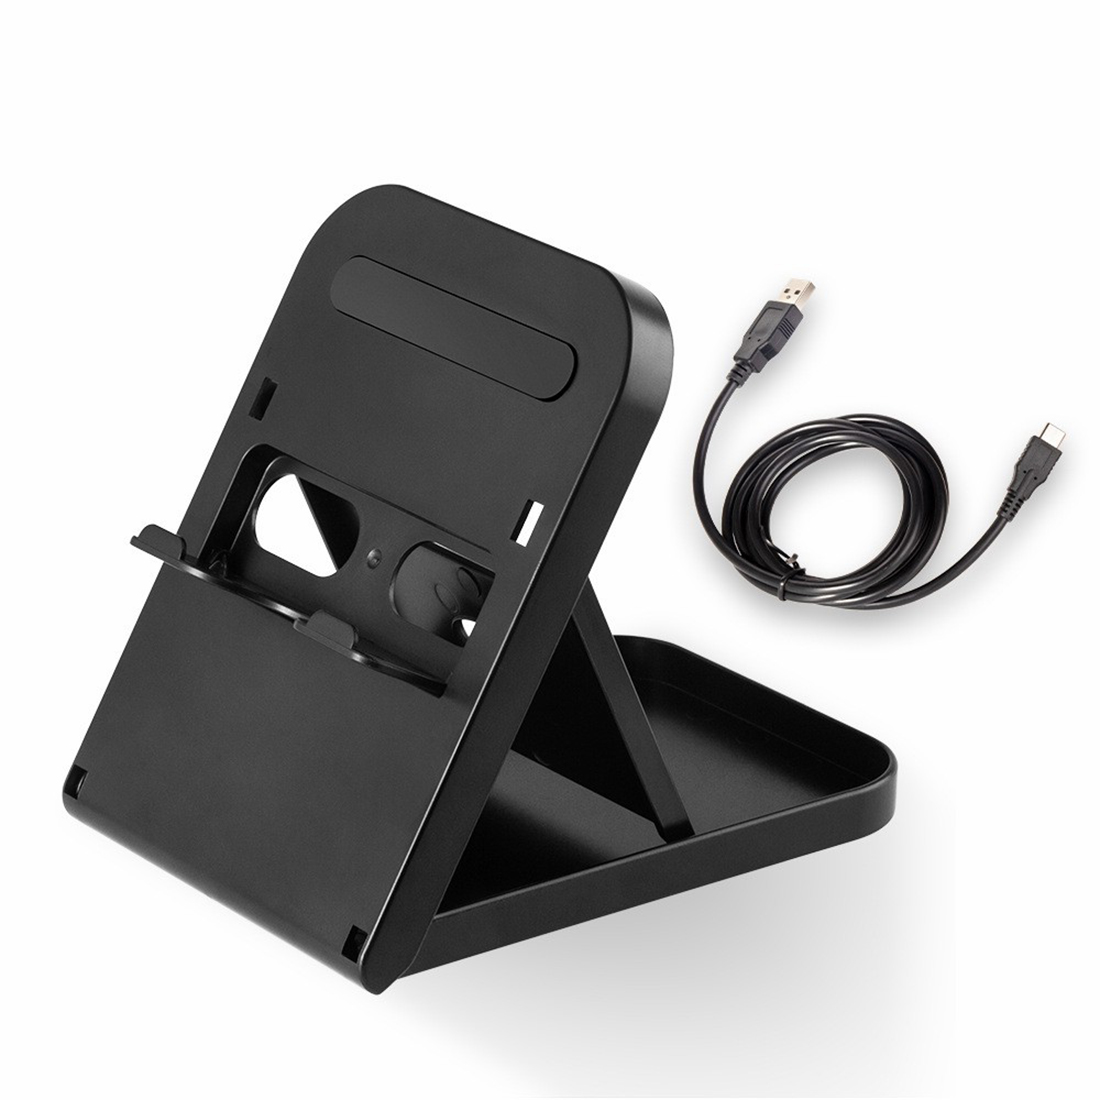 Game Console Stand Adjustable Bracket for Switch